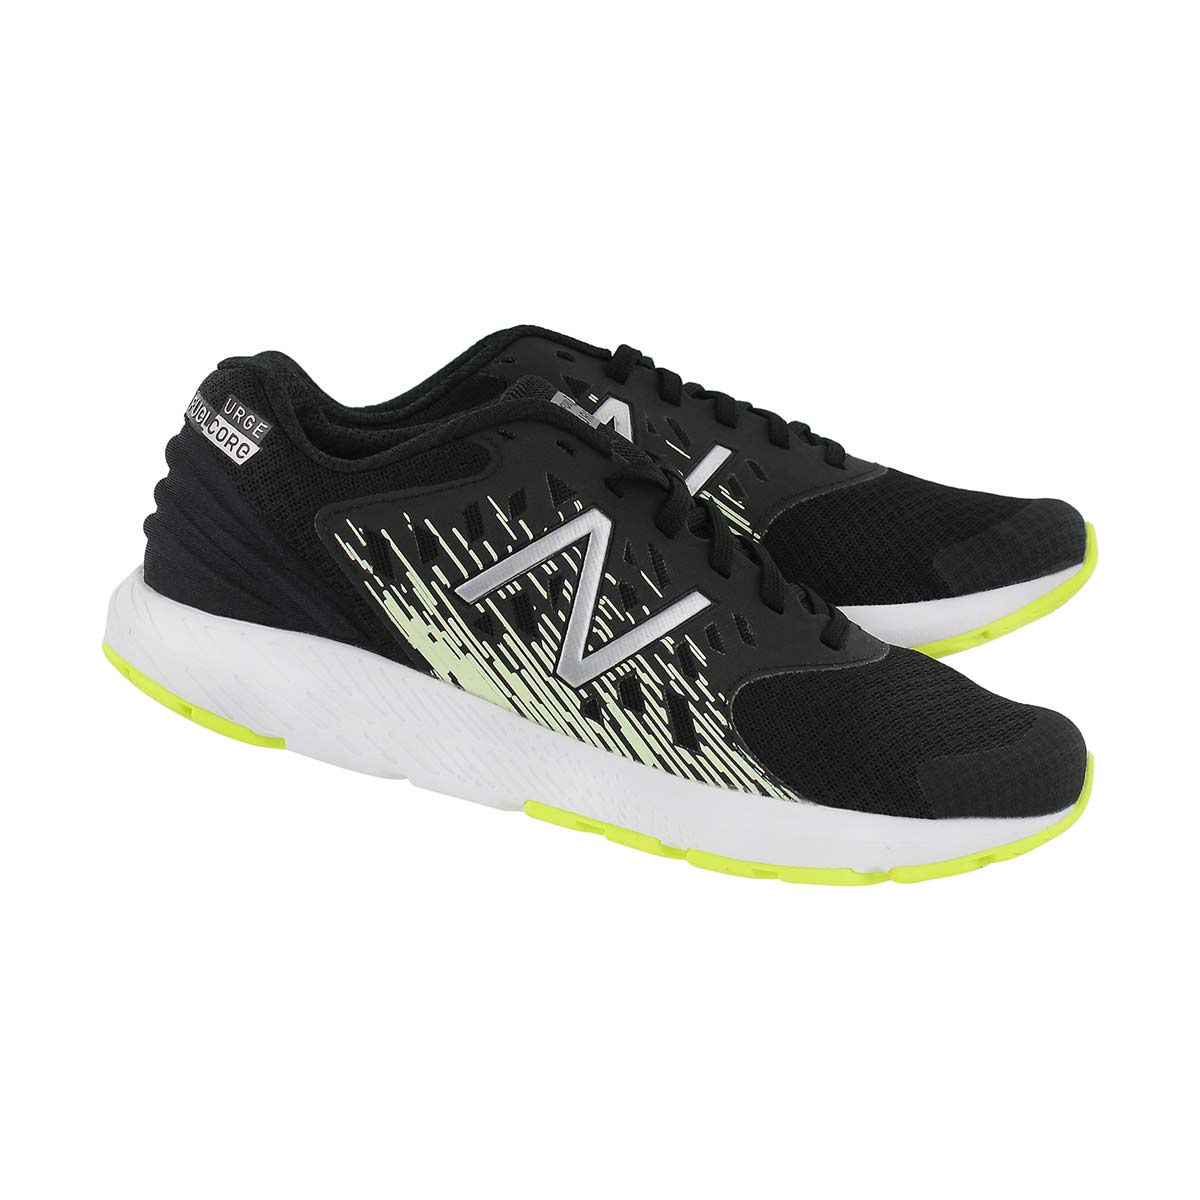 Bys Urge black/glow lace up sneaker